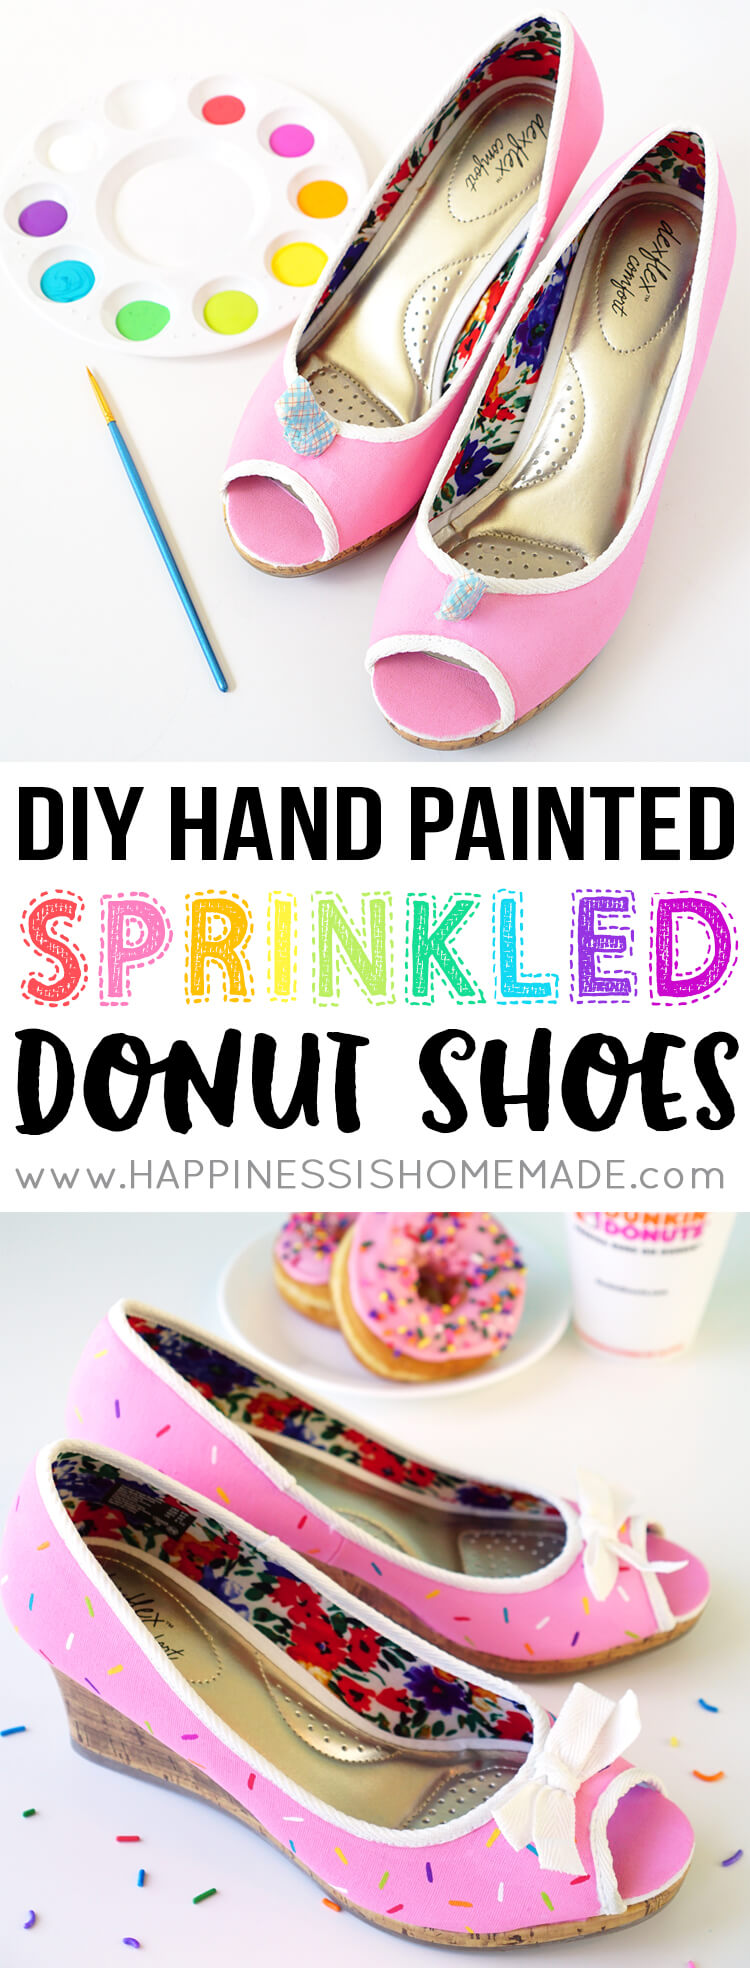 diy-hand-painted-pink-sprinkled-donut-shoes